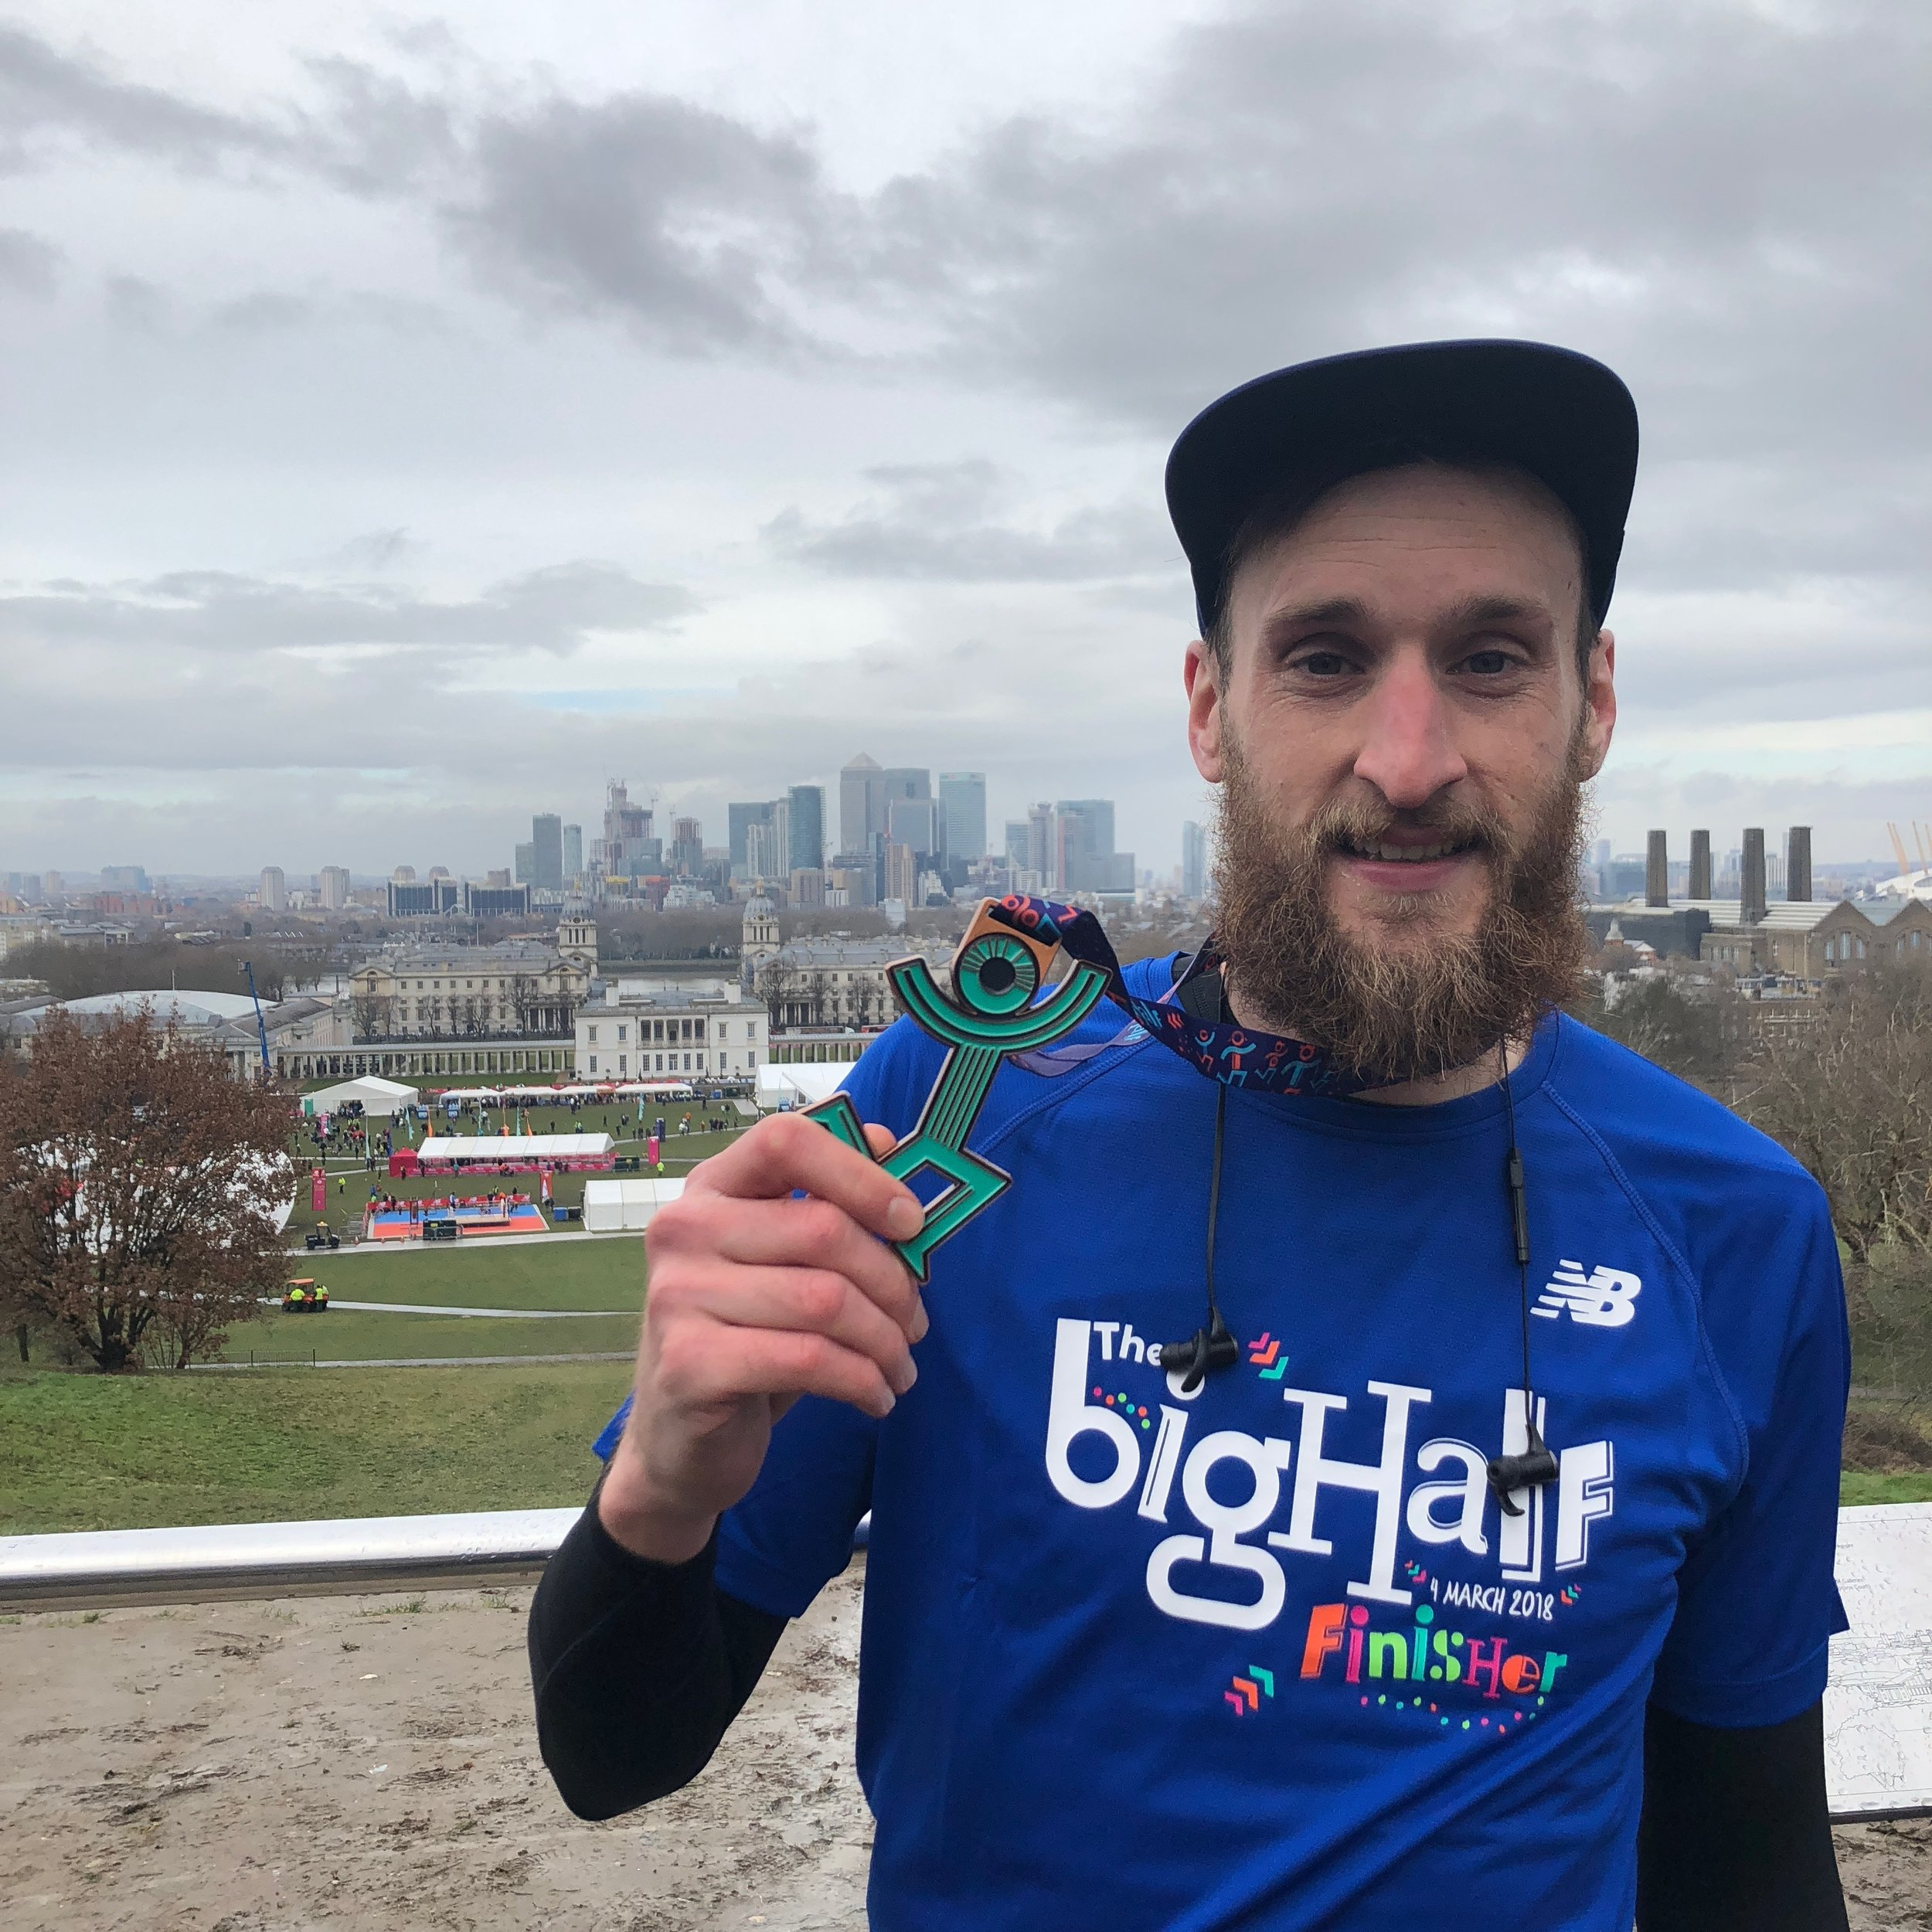 2018 Big Half Finisher.JPG